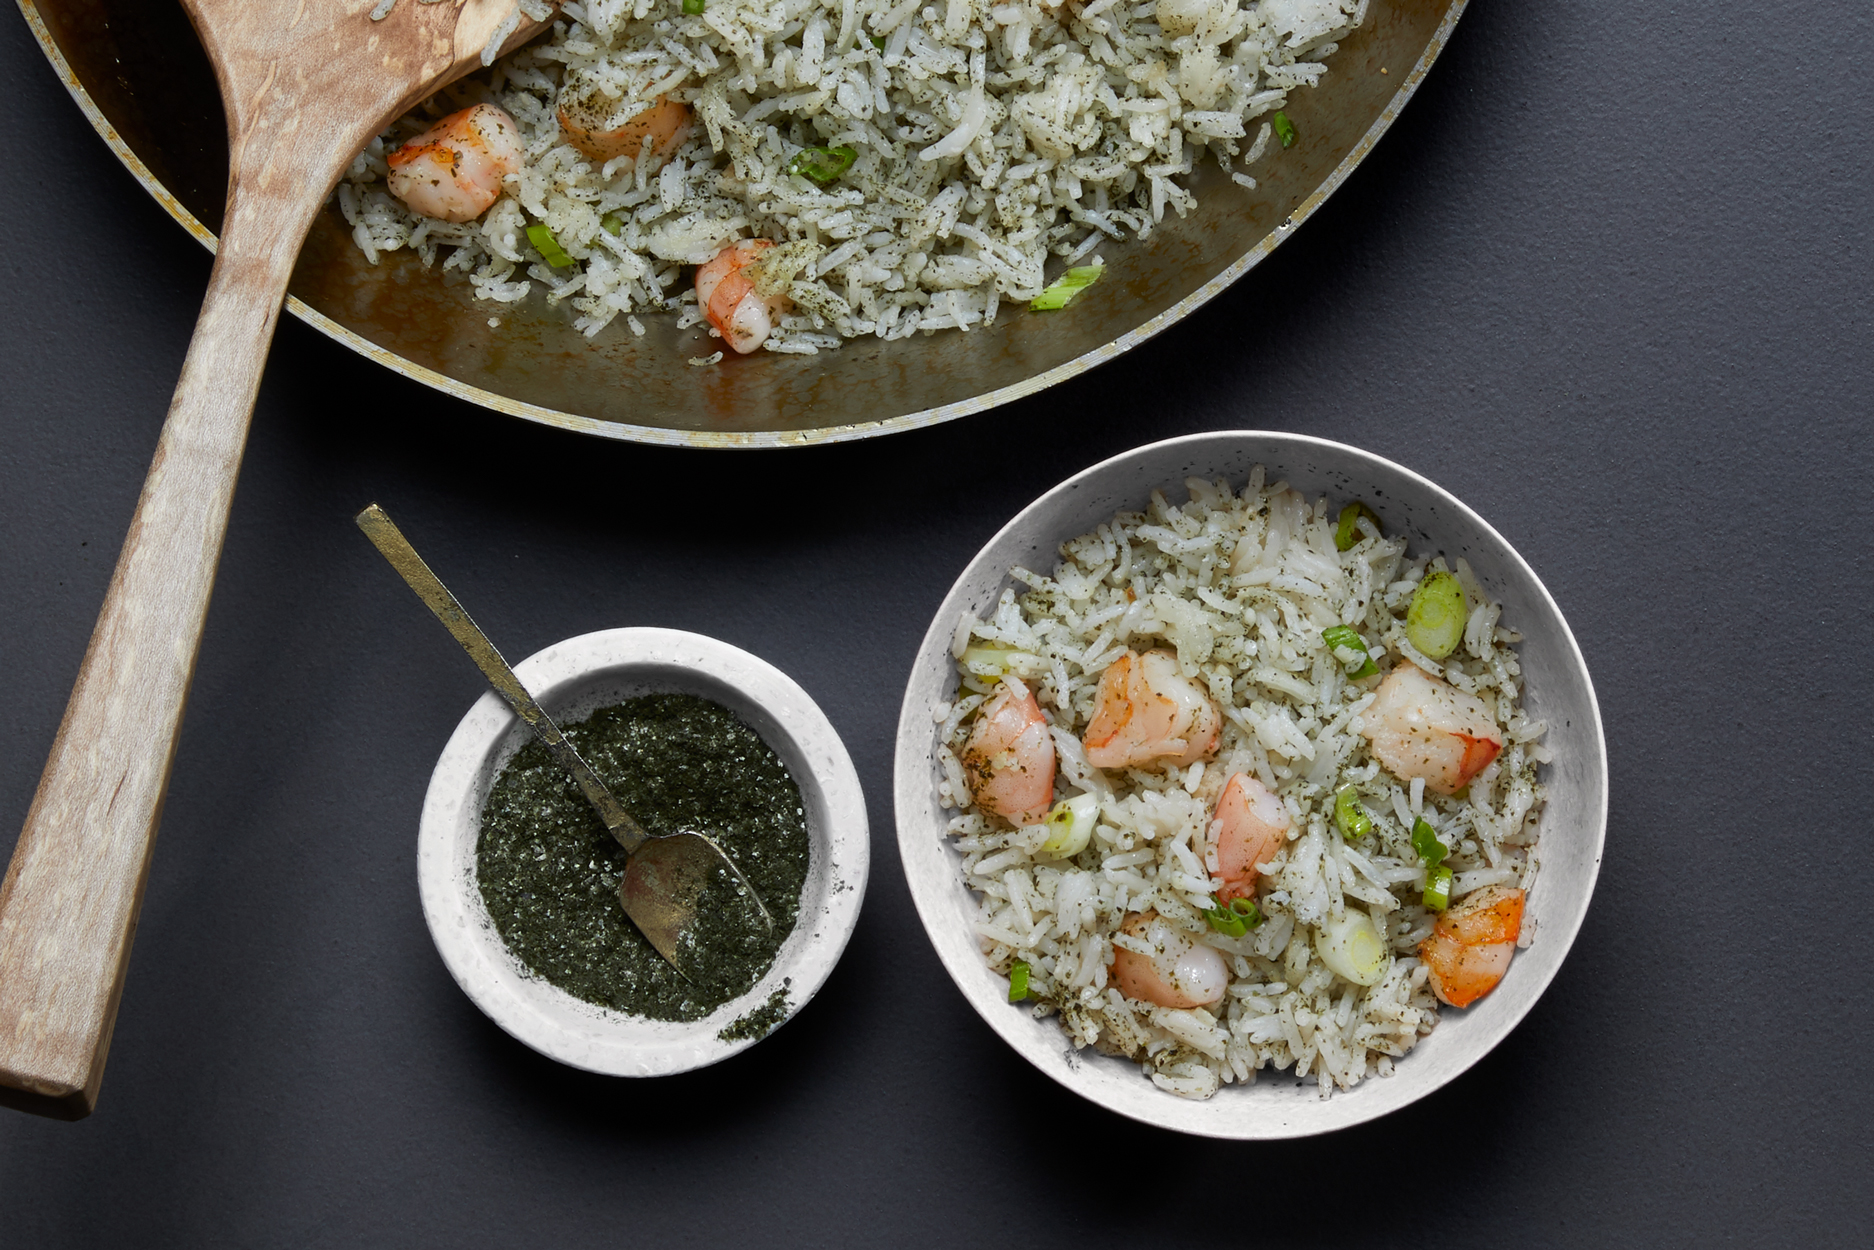 Nori and Shrimp Fried Rice Recipe